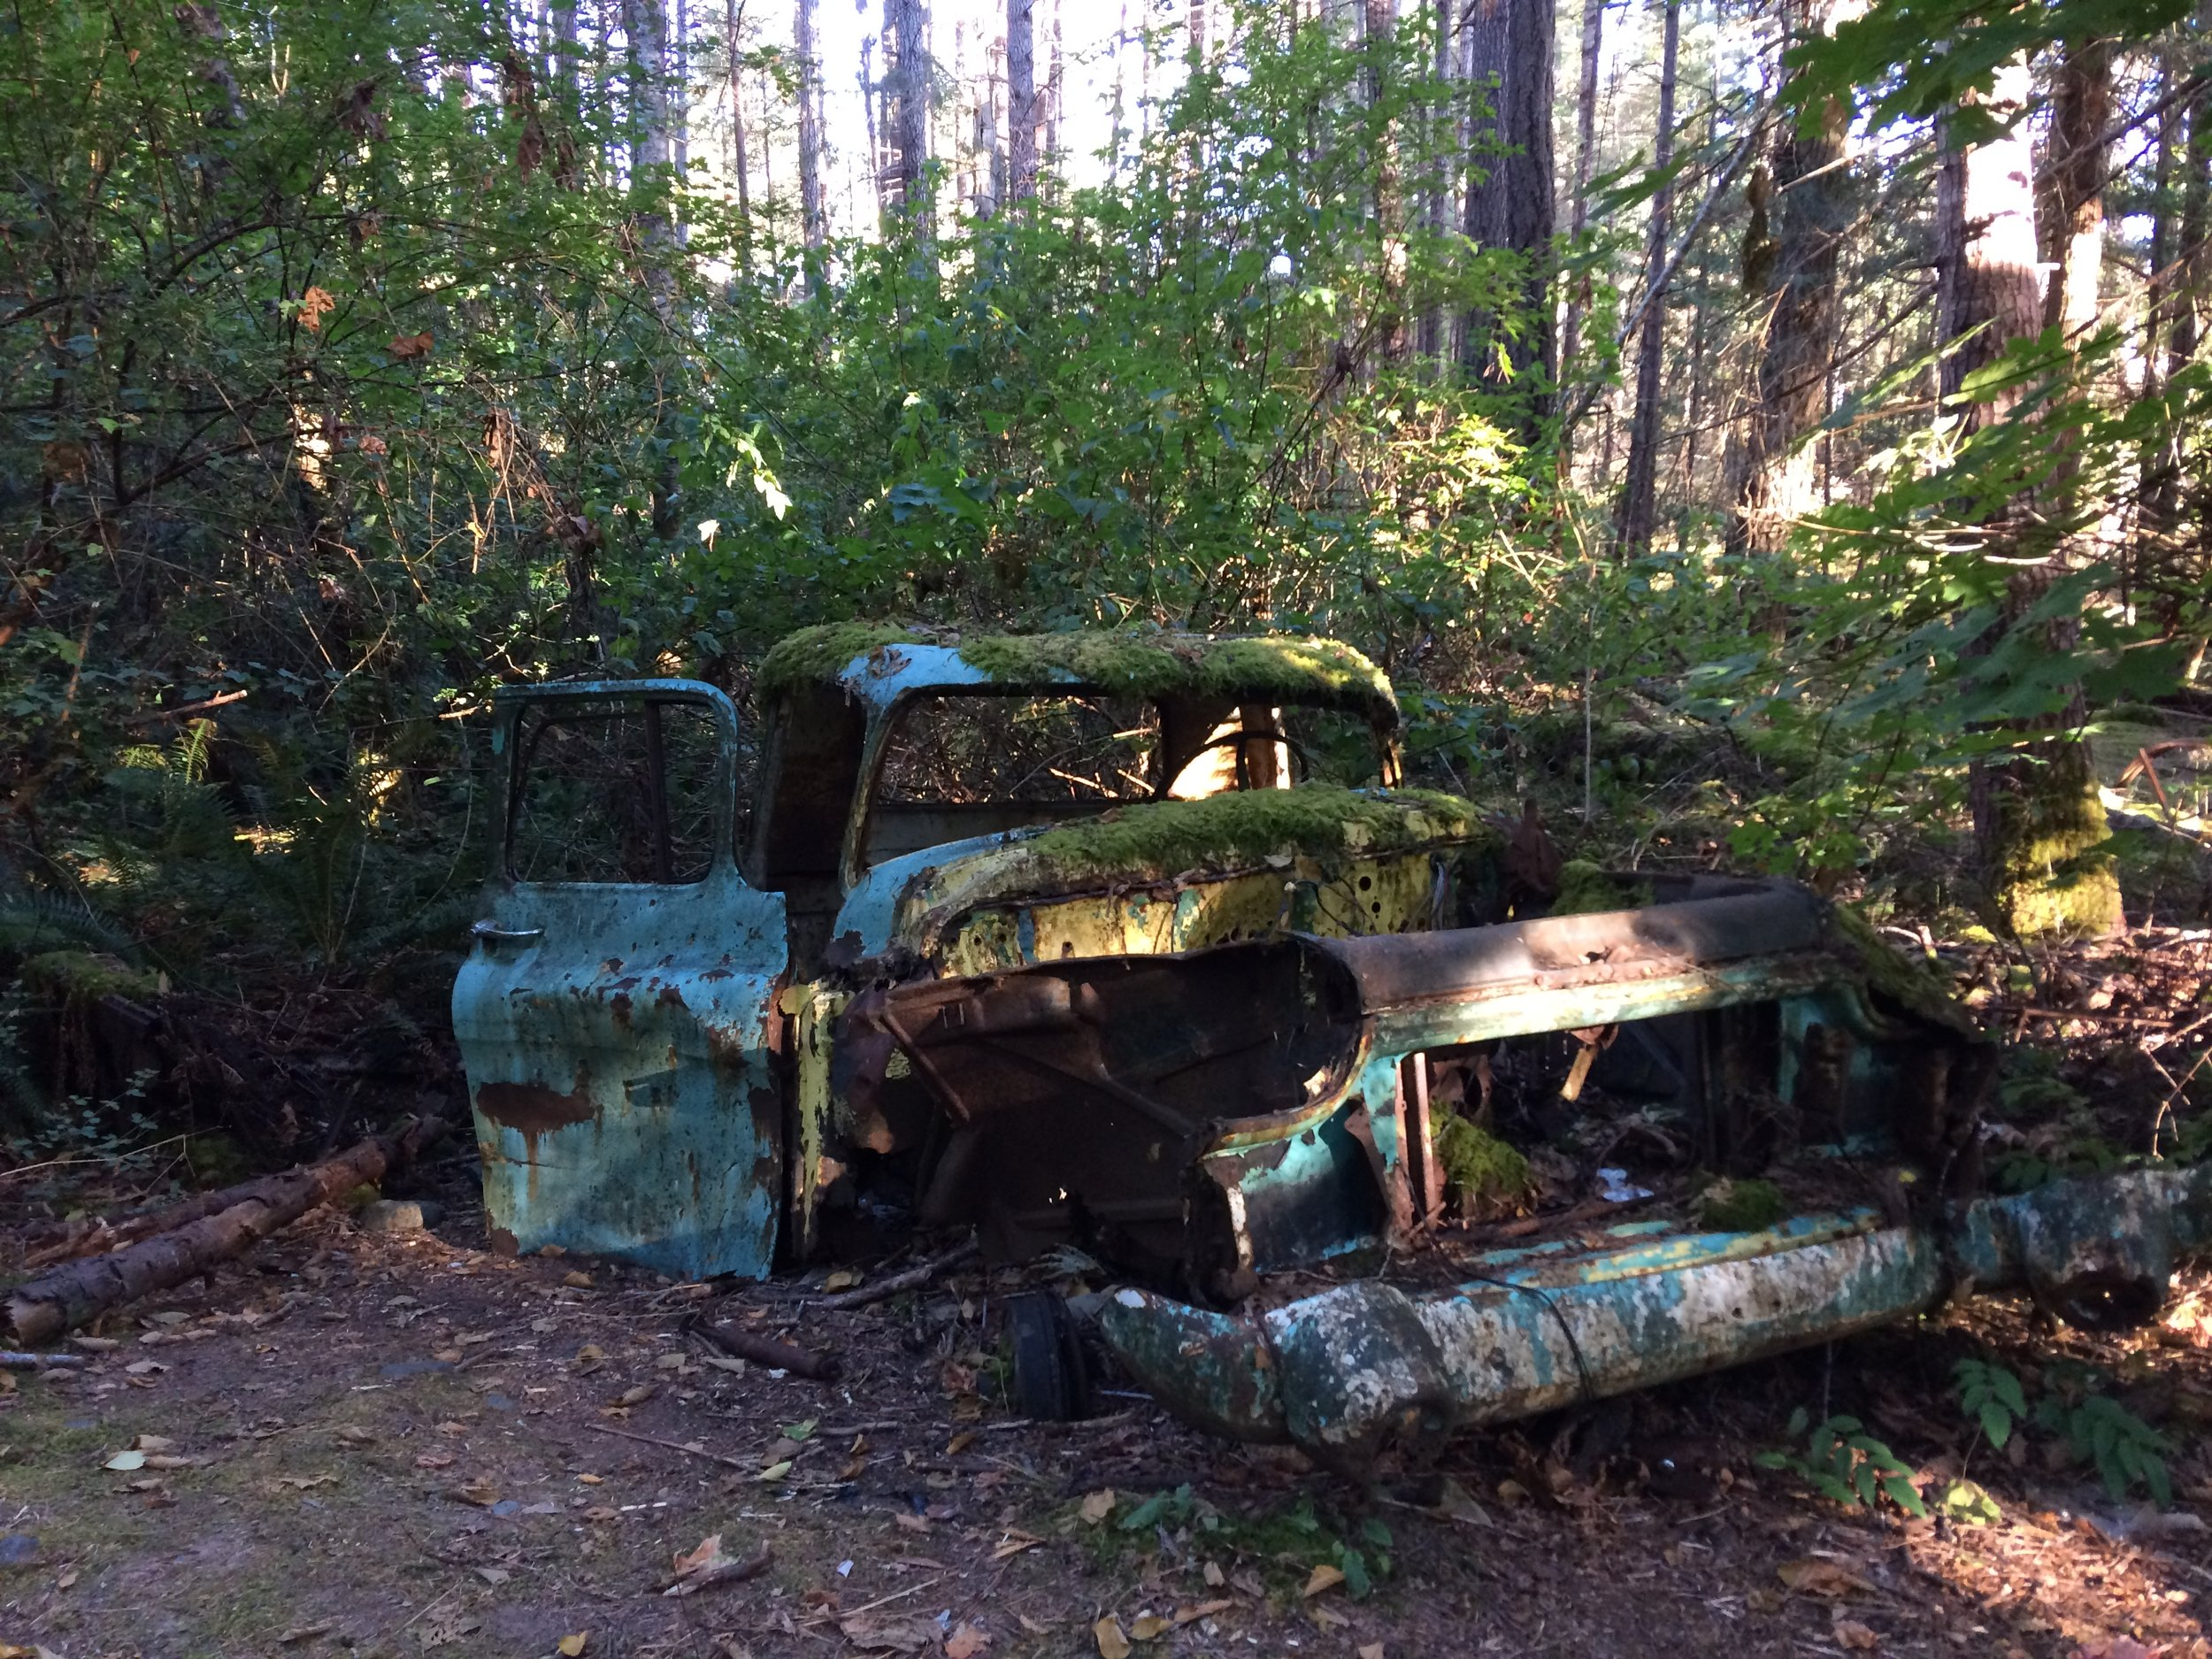 One of the joys of painting en plein air is to wander aimlessly until something catches my eye, and I stop to paint it. On Galeano Island, I stumbled across this truck  embalmed in moss and sheltered by spires of alder and doug fir.